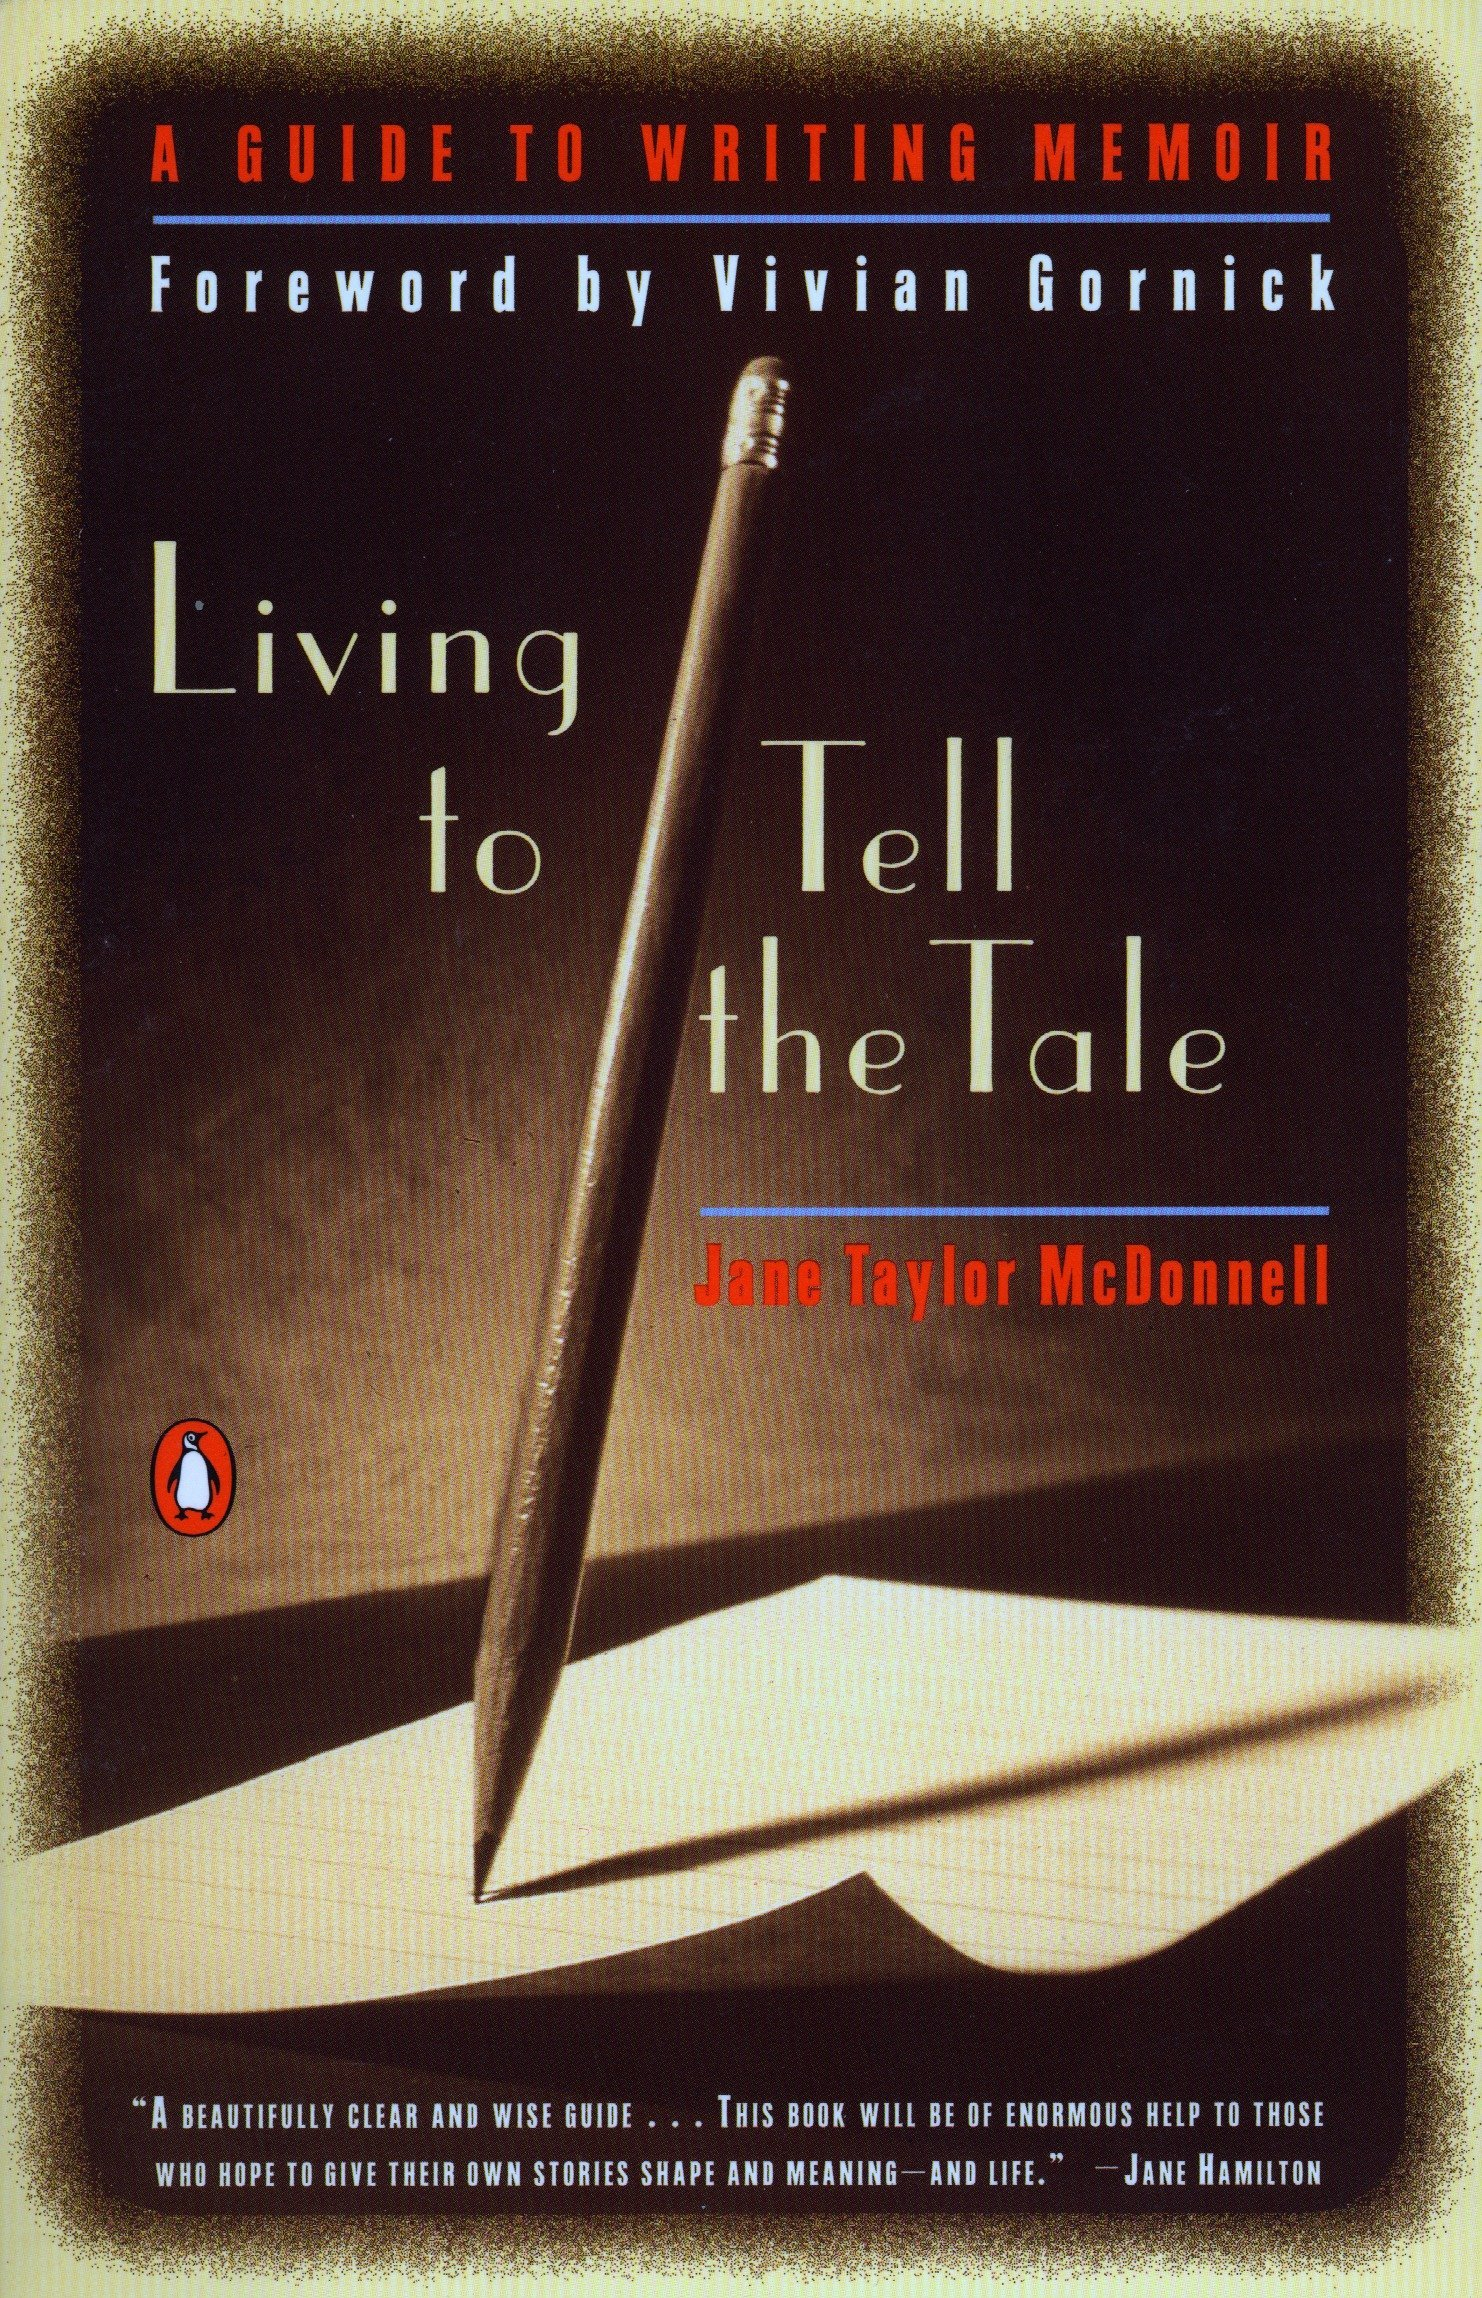 Living to Tell the Tale: A Guide to Writing Memoir: Jane Taylor McDonnell,  Vivian Gornick: 9780140265309: Amazon.com: Books